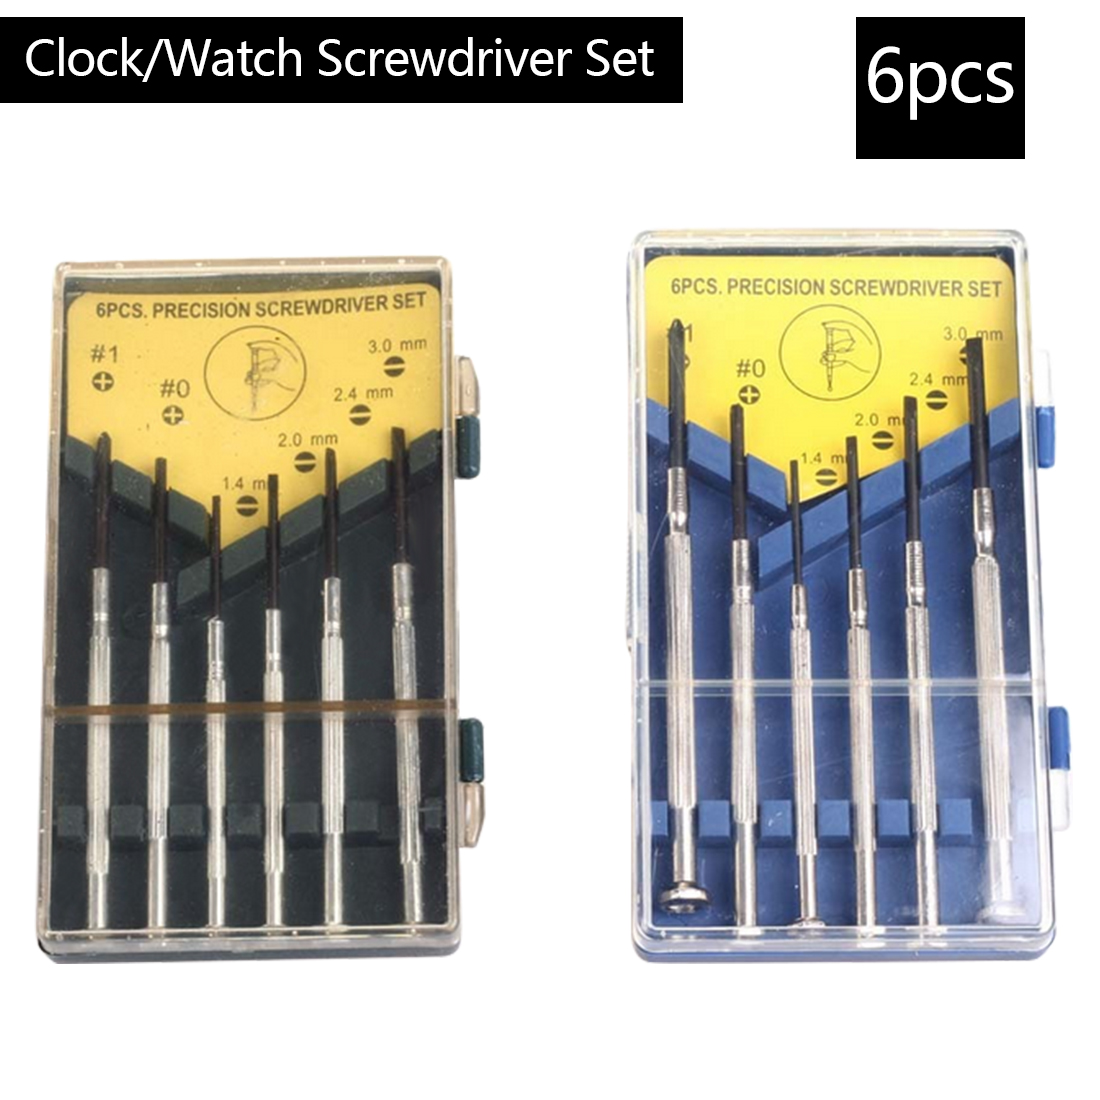 6pcs Precision Multifunction Mini Small Screwdriver Set With Slotted Phillips Bits For Watch Glasses Screw Driver Repair Tools